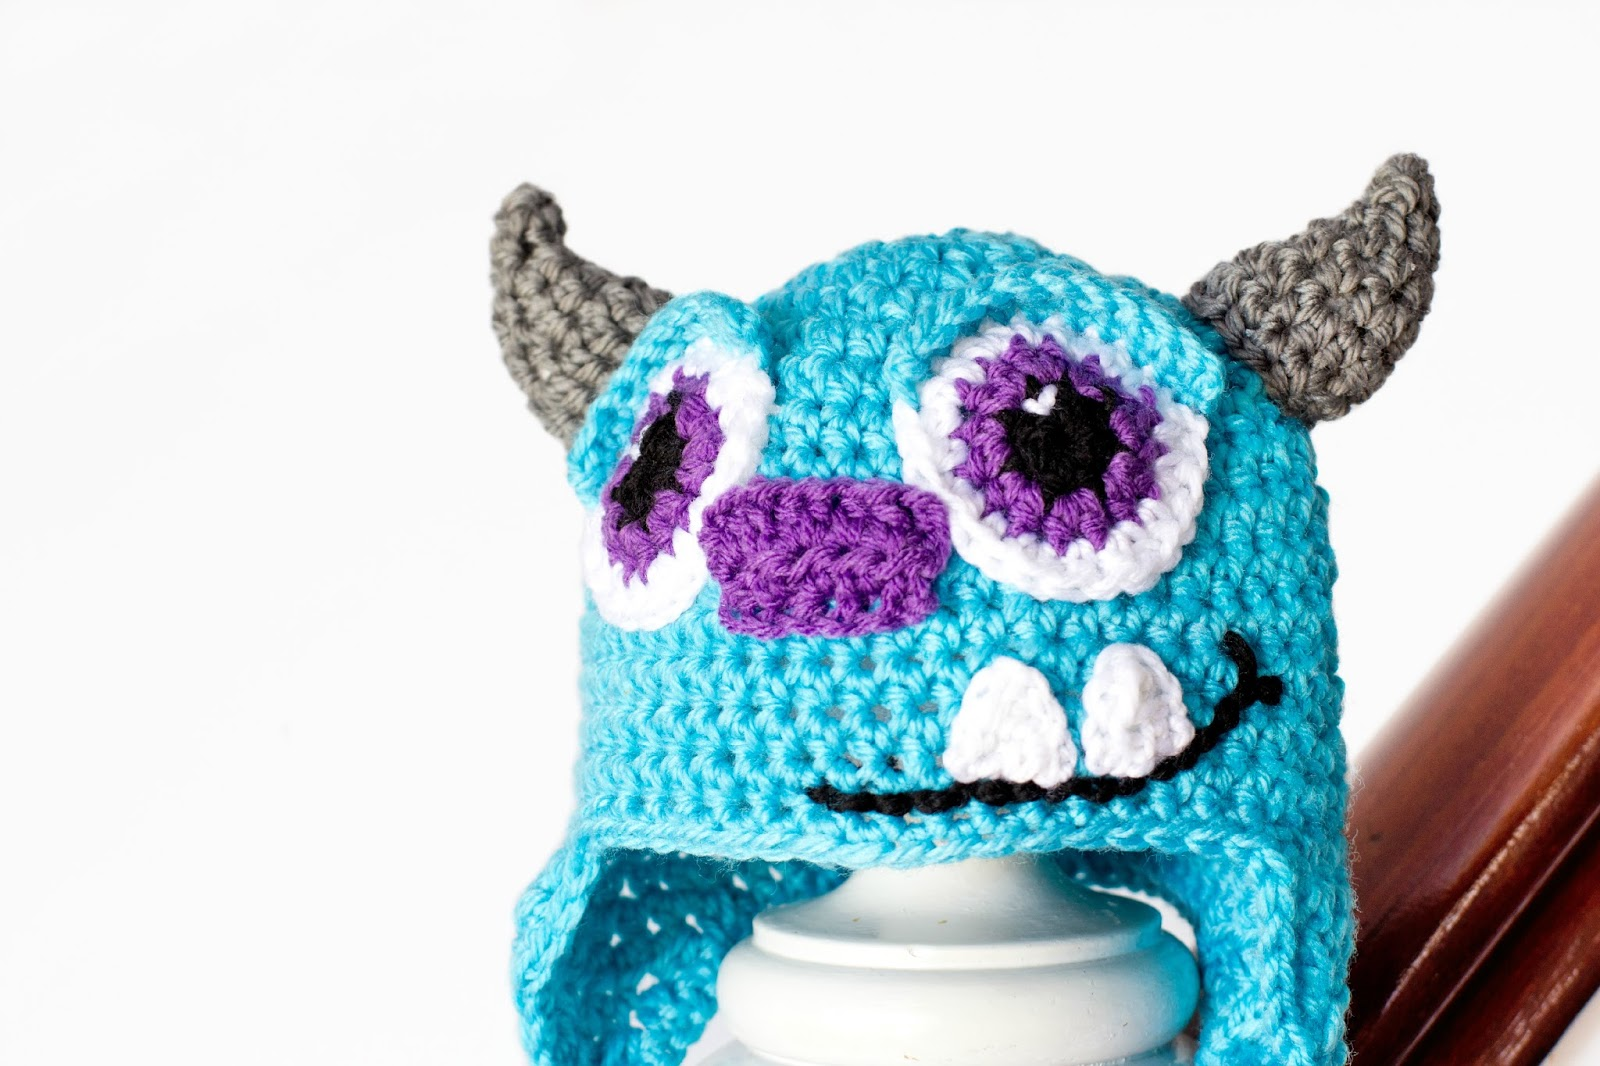 http://2.bp.blogspot.com/-2kFKDPQUrS8/Uwxx0vyTRsI/AAAAAAAAHUY/vZiOmhTJAzI/s1600/Monsters+Inc.+Sulley+Inspired+Baby+Hat+Crochet+Pattern+1.jpg